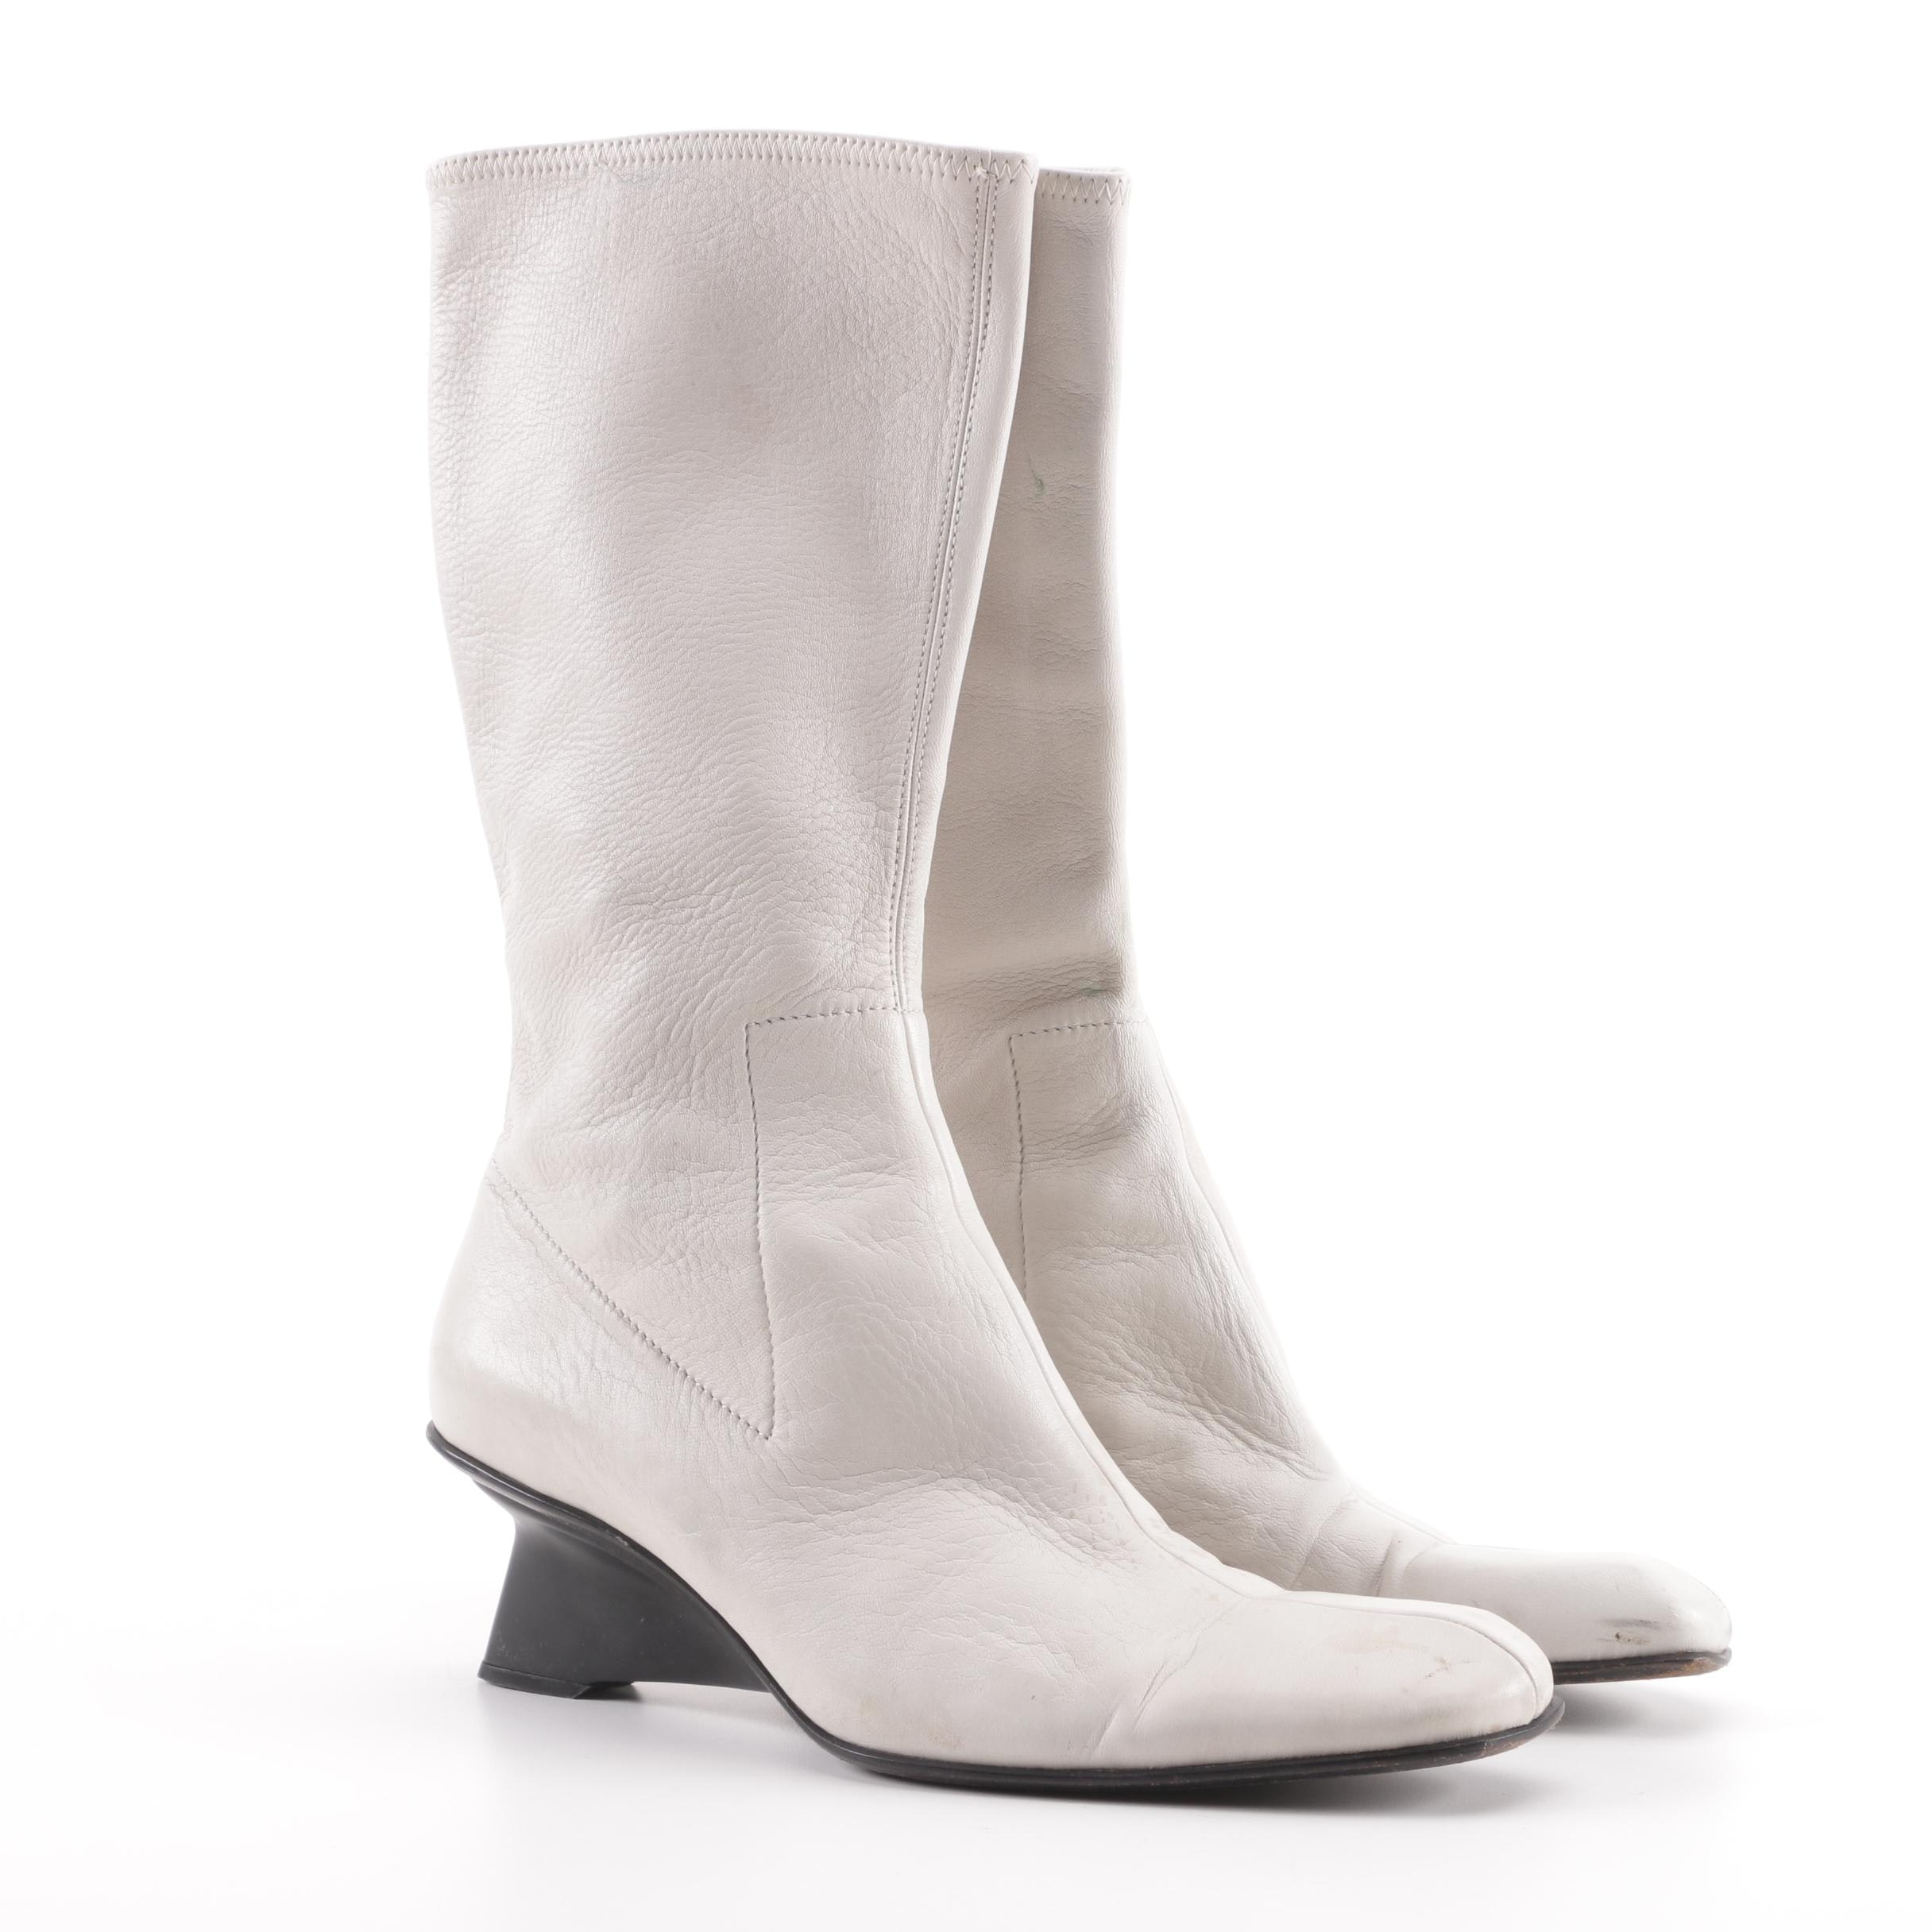 Prada Grey Leather Calf-Length Boots, Made in Italy